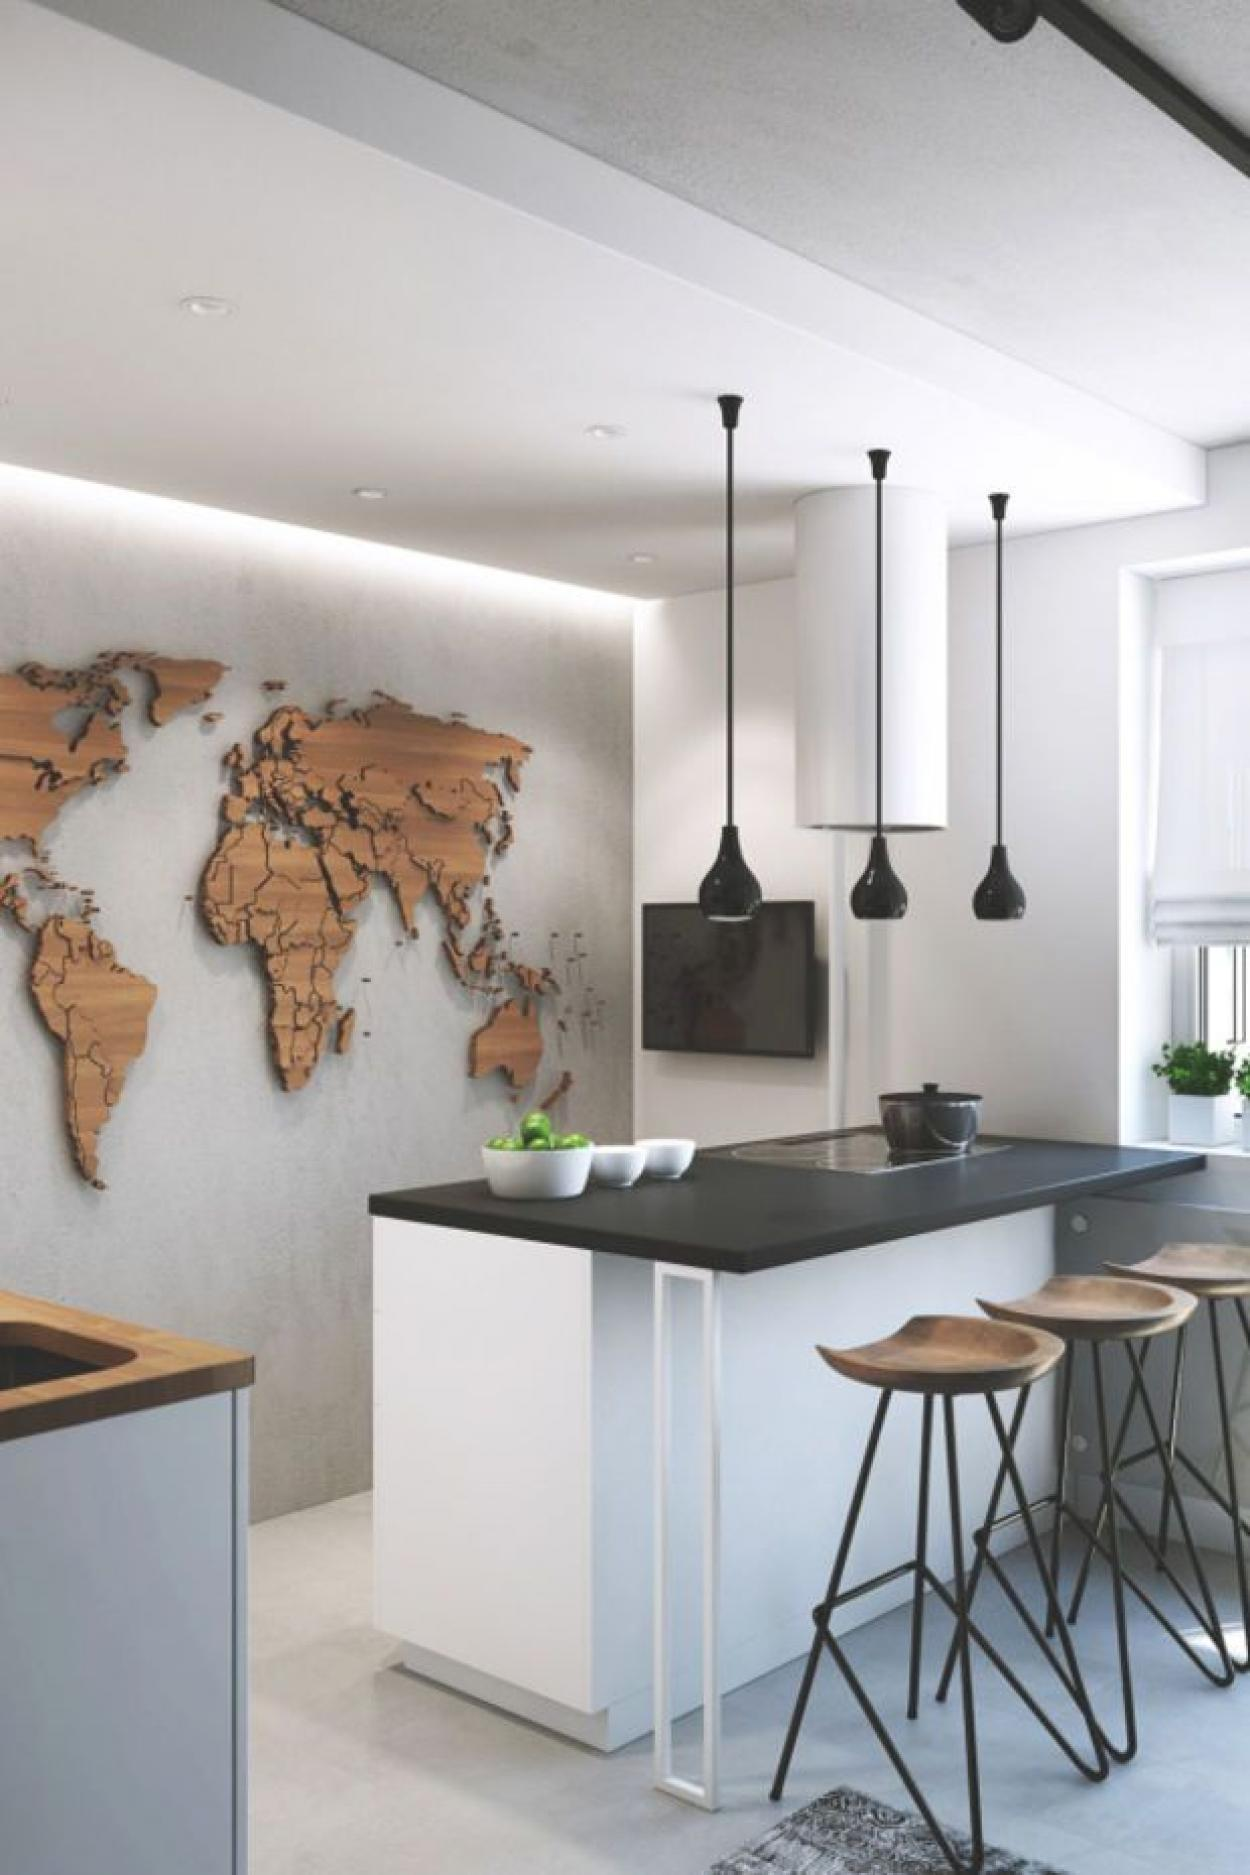 small-modern-kitchen-apartment-decor-with-map-atlas-wall-decor